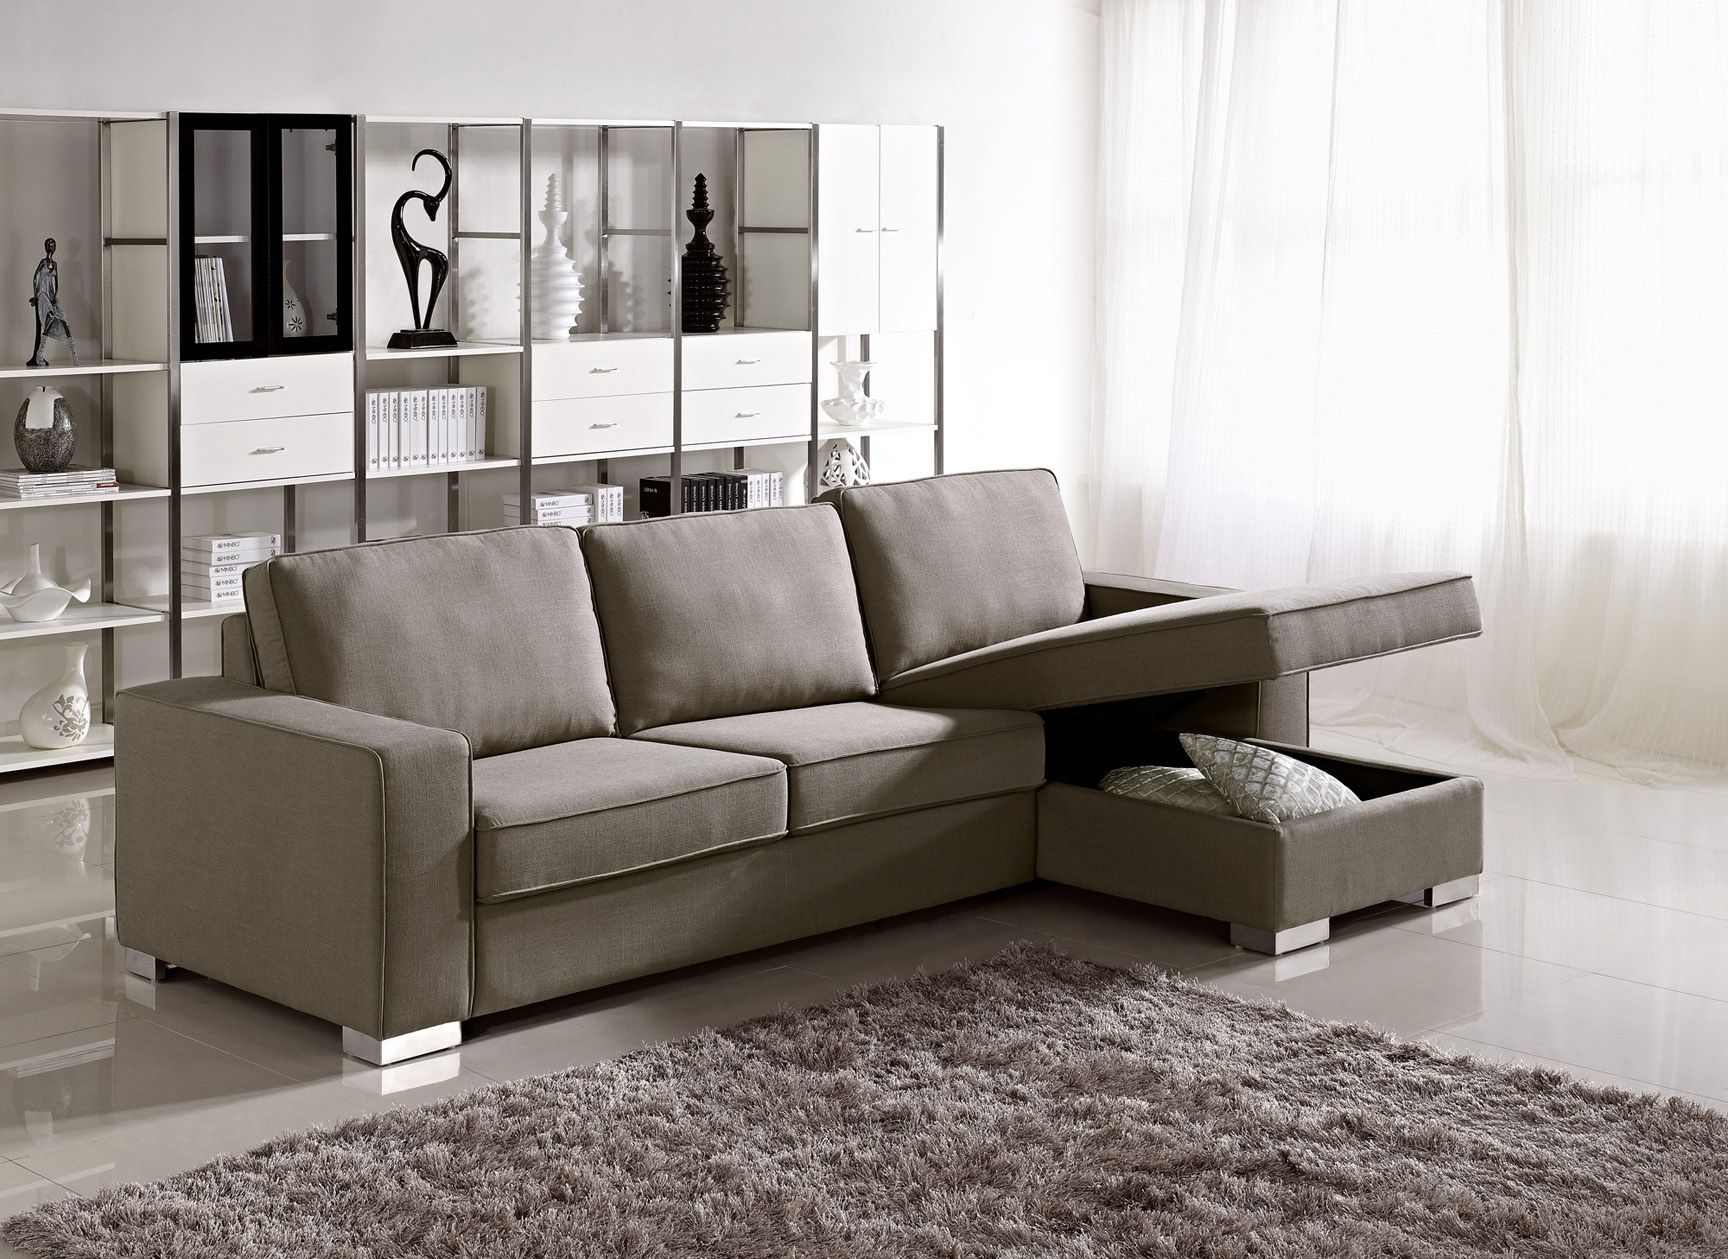 Apartment Size Grey Fabric Storage Sectional With Easy Pull Out Bed Houston Texas Es Apartment Sectional Sofa Sectional Sofa With Chaise Modern Sofa Sectional